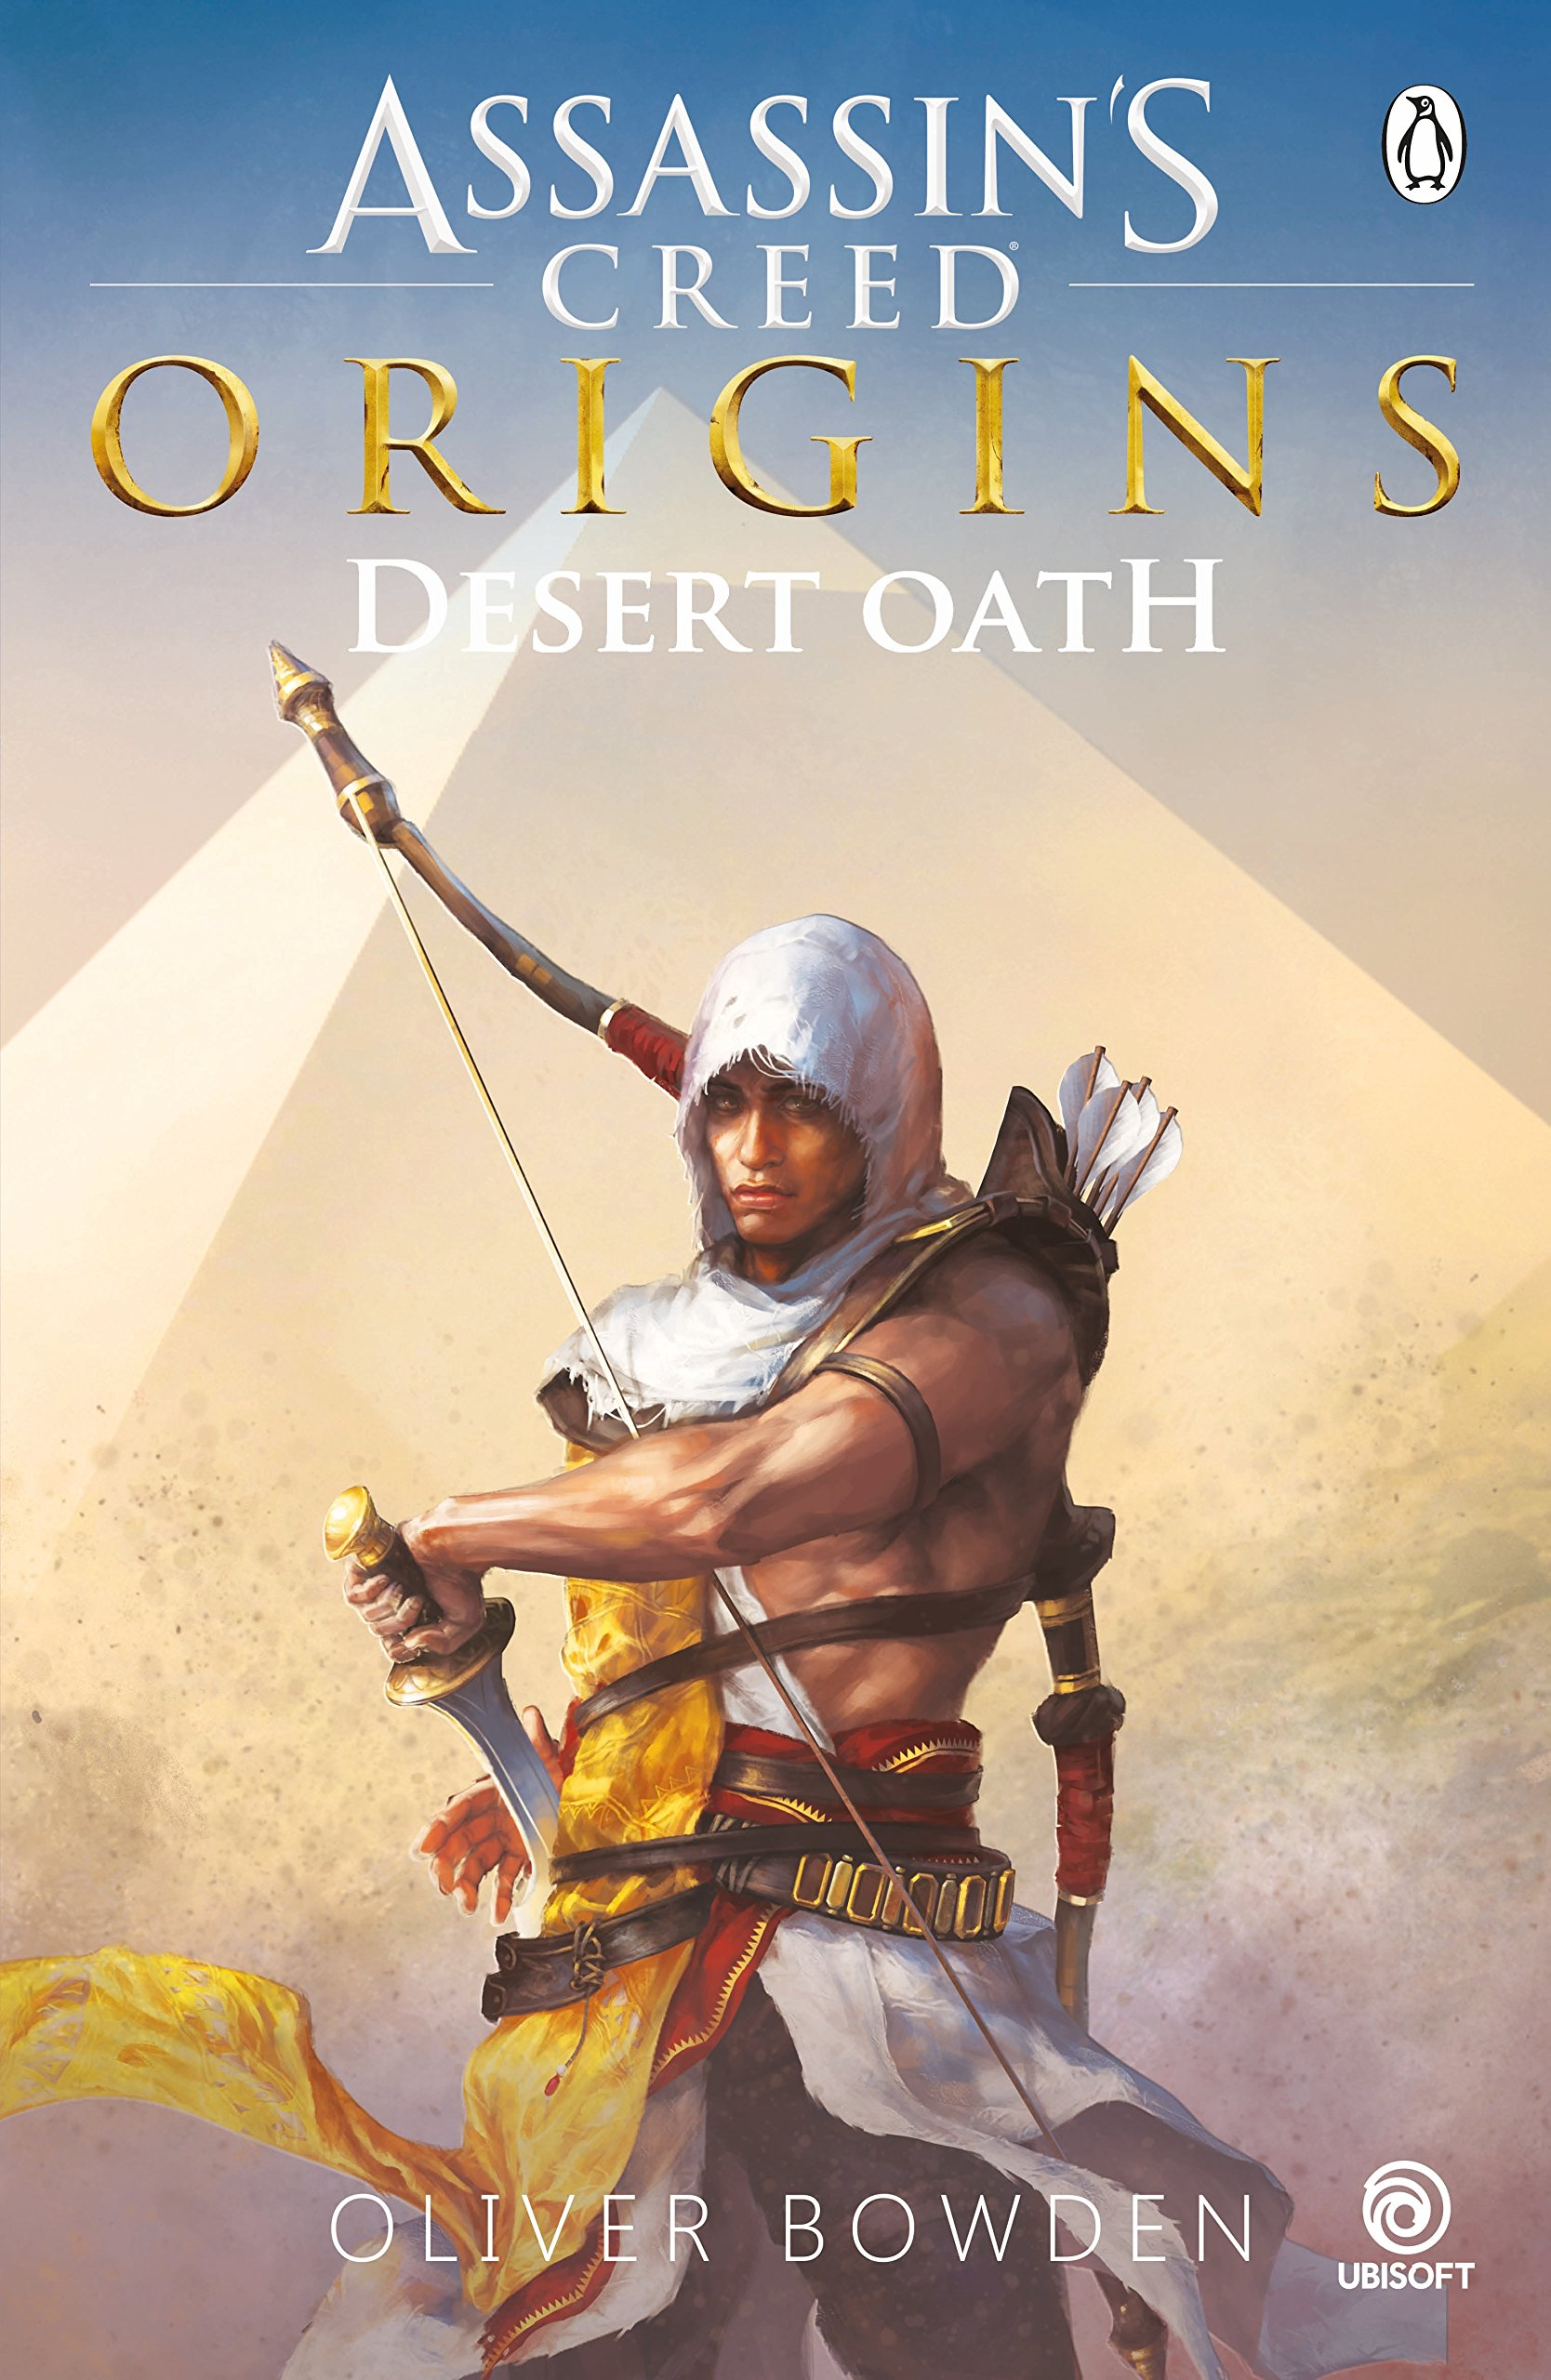 Assassin's Creed: Desert Oath